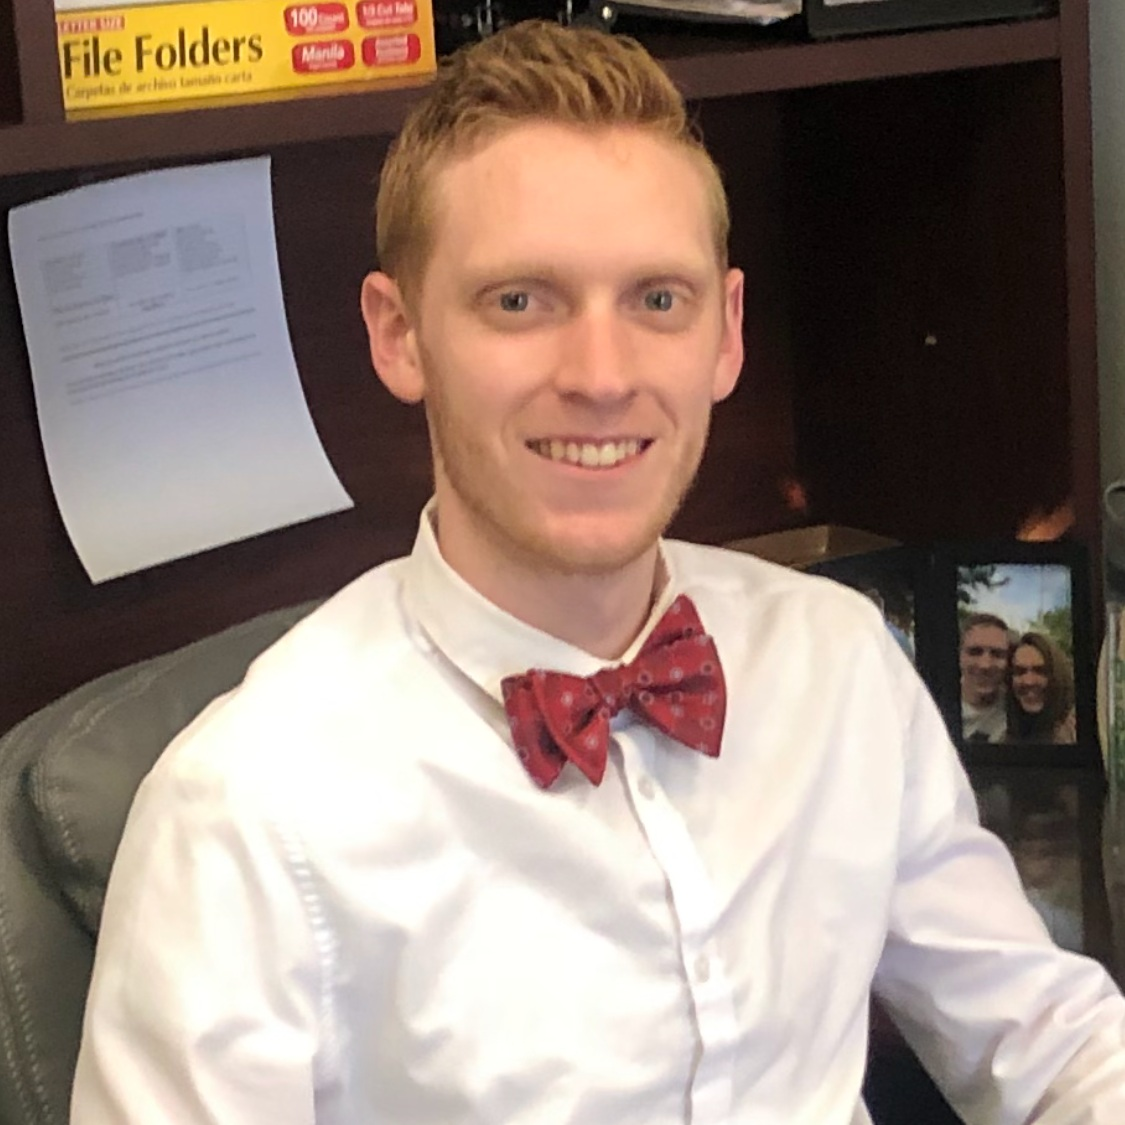 RICHARD POLL, PARALEGAL/CASE MANAGER   Richard is a graduate of Utah State University, graduating in International Studies and French. He has recently been accepted to the S.J. Quinney College of Law, at the University of Utah, class of 2022.